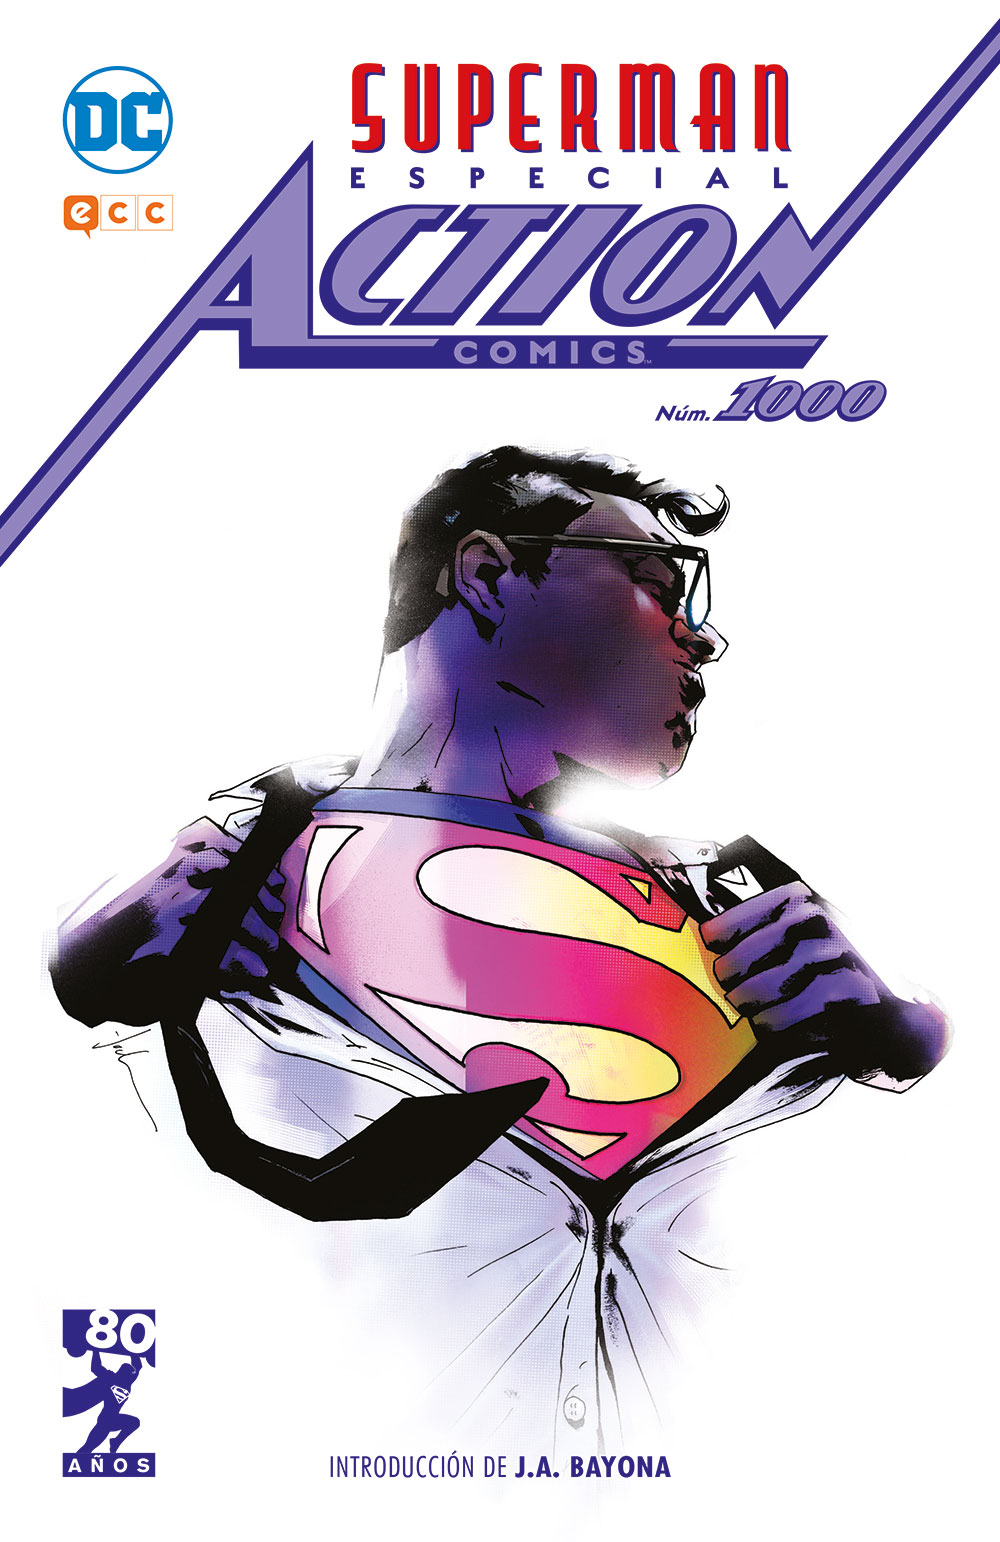 Superman: Especial Action Cómics #1000